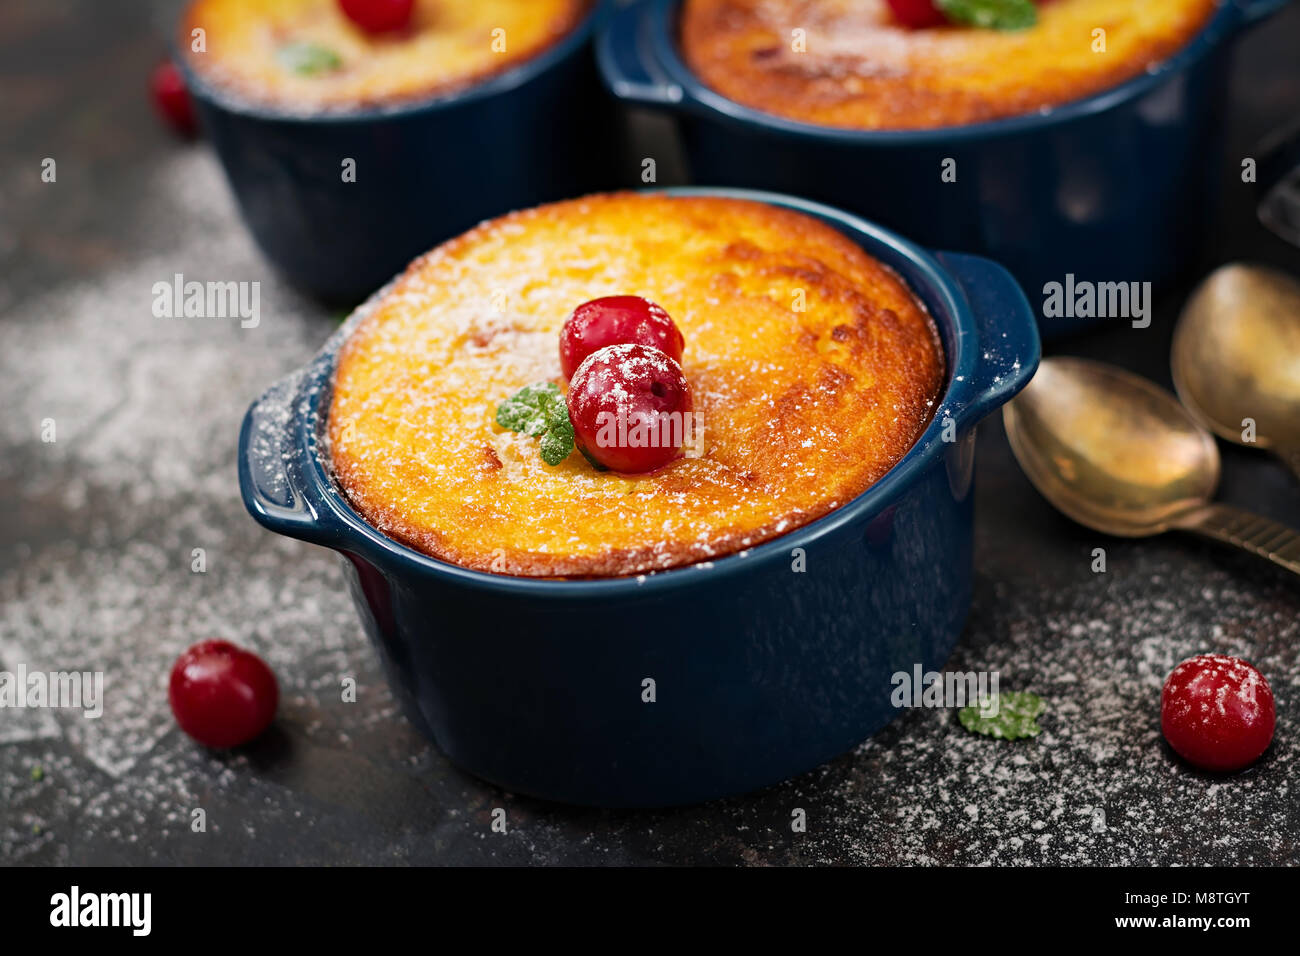 Cottage cheese casserole with cherries - Stock Image